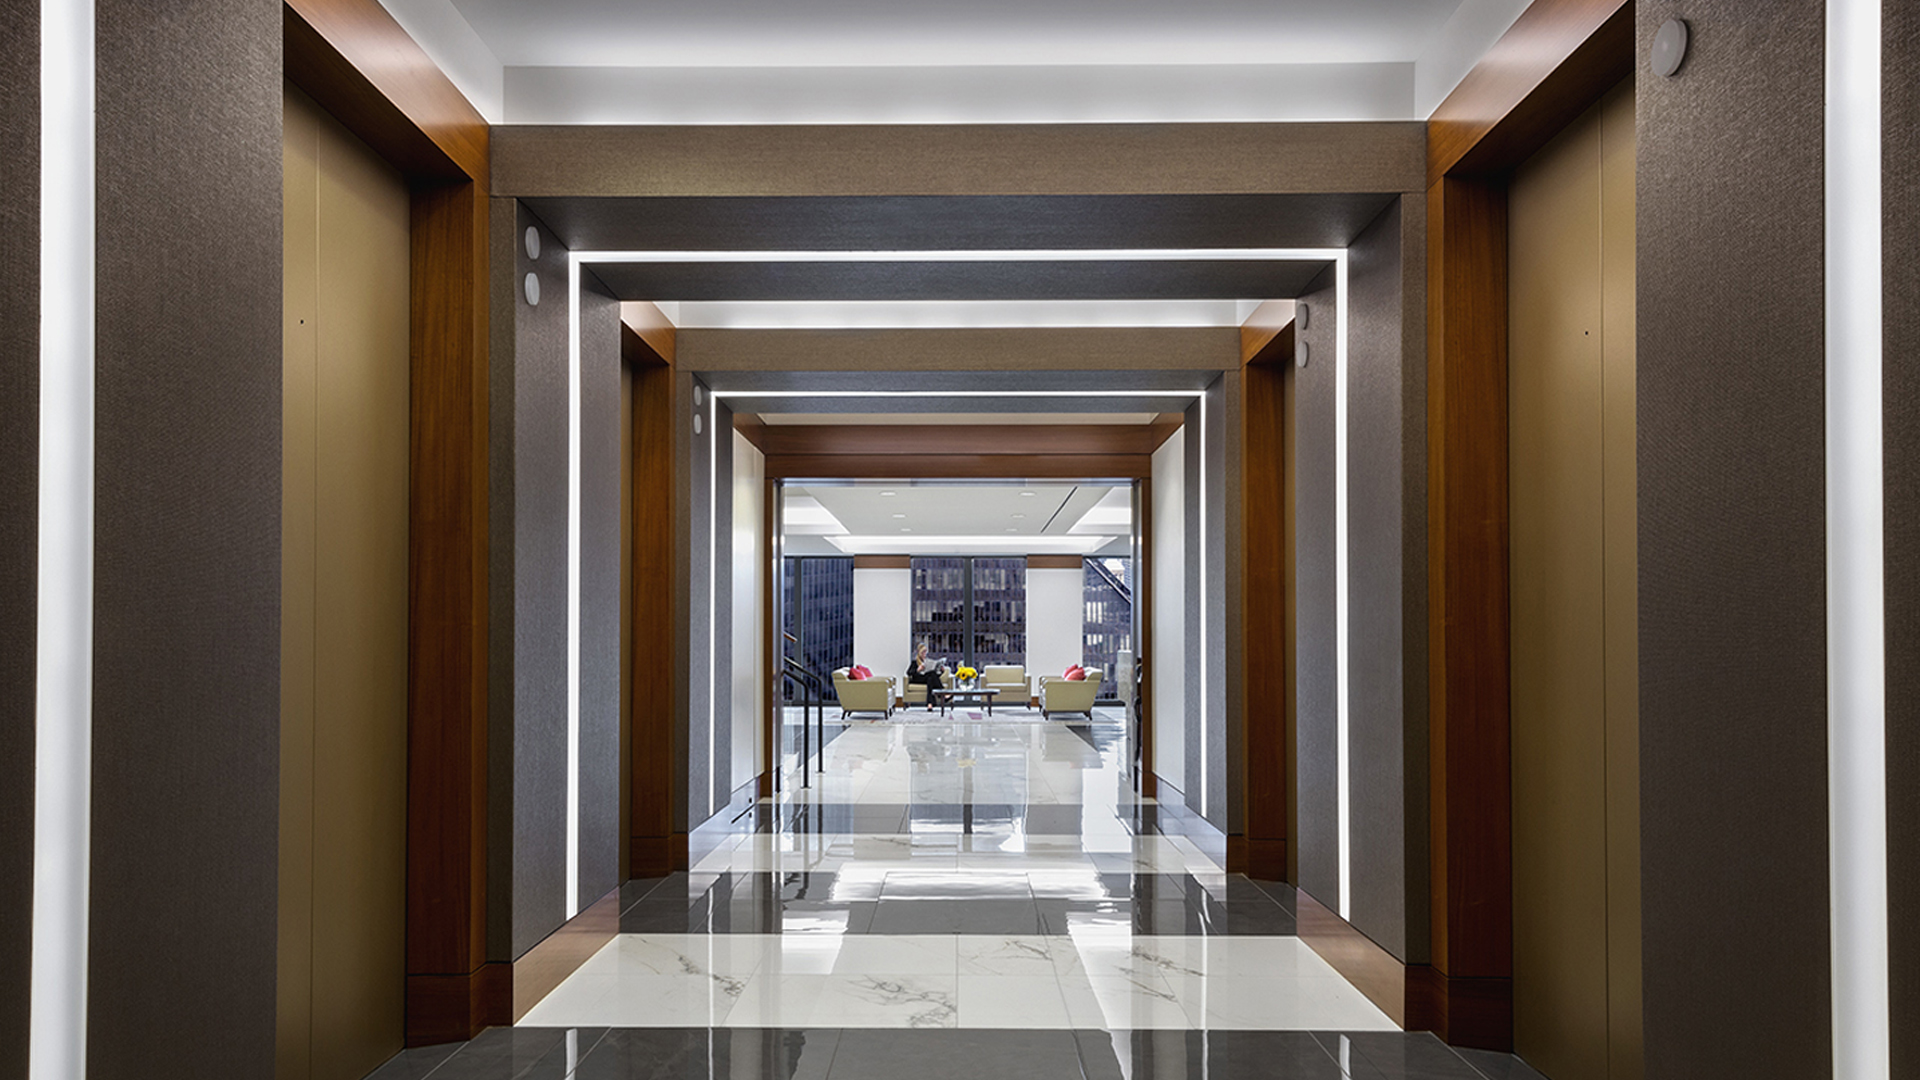 Corporate Law Interior Design Mayer Brown Houston Elevator lobby Entrance